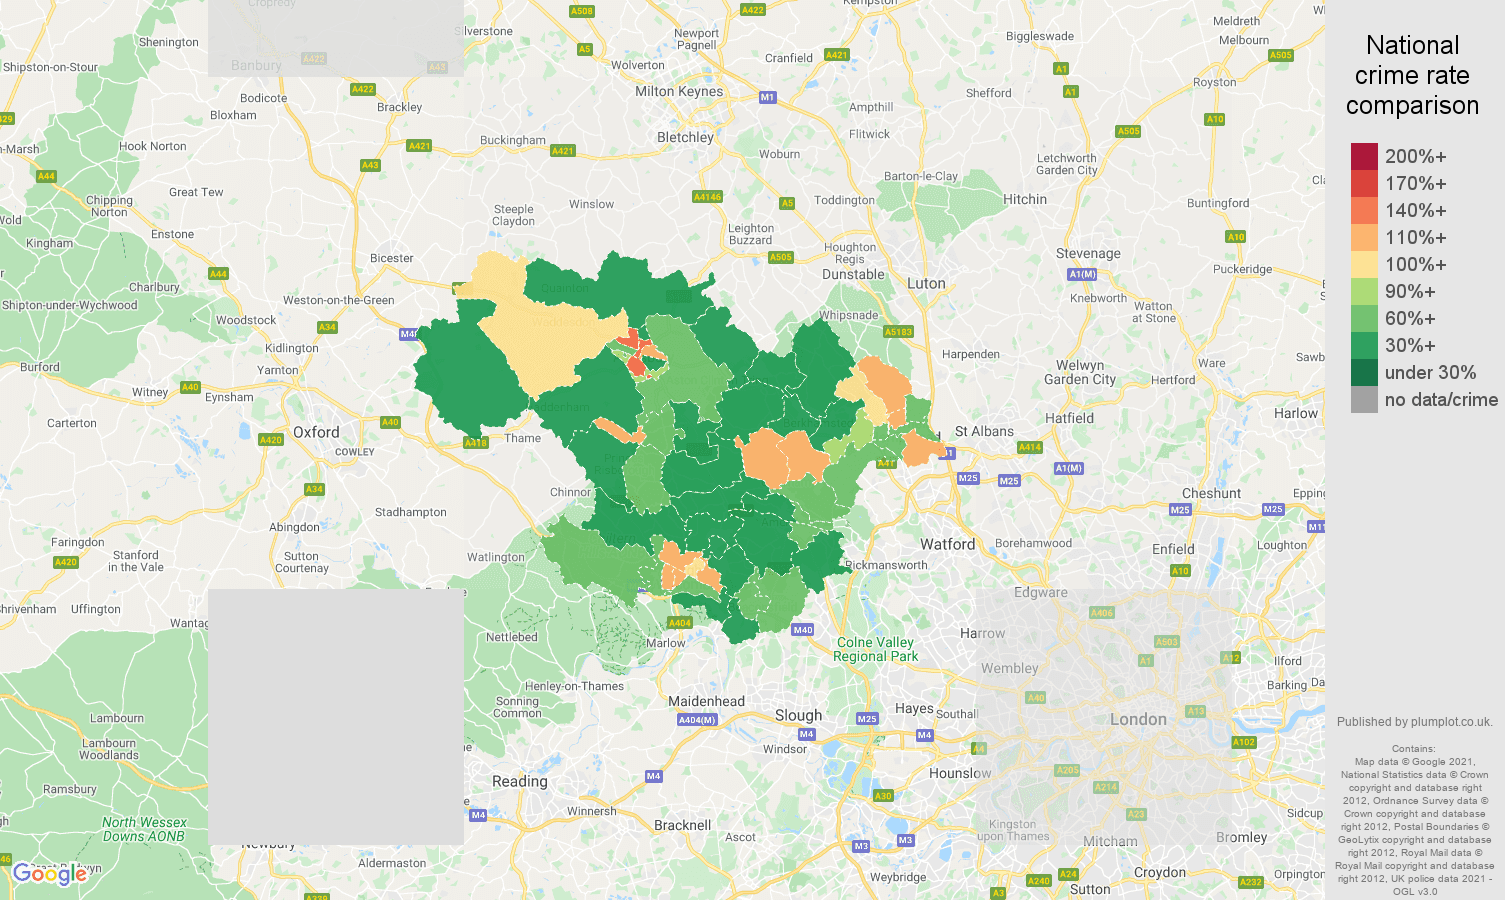 Hemel Hempstead violent crime rate comparison map